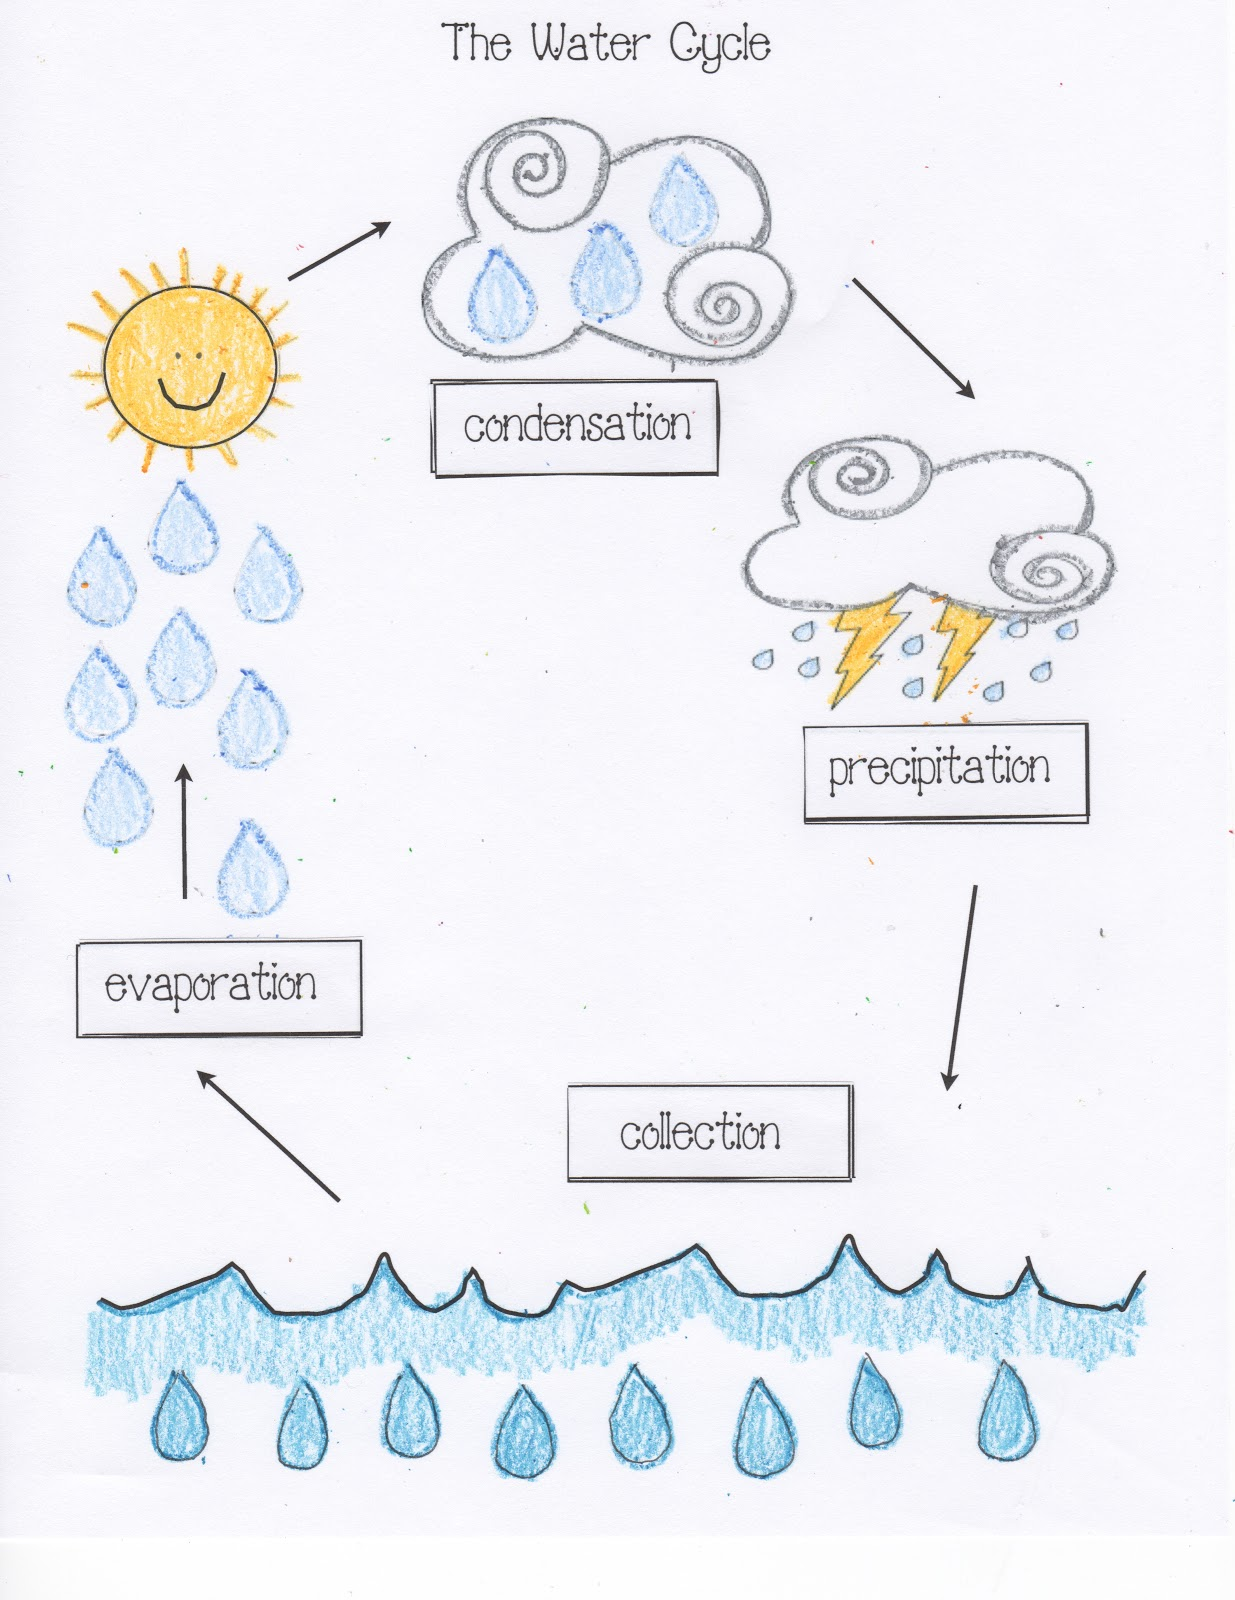 The Water Cycle Worksheets – The Water Cycle Worksheets